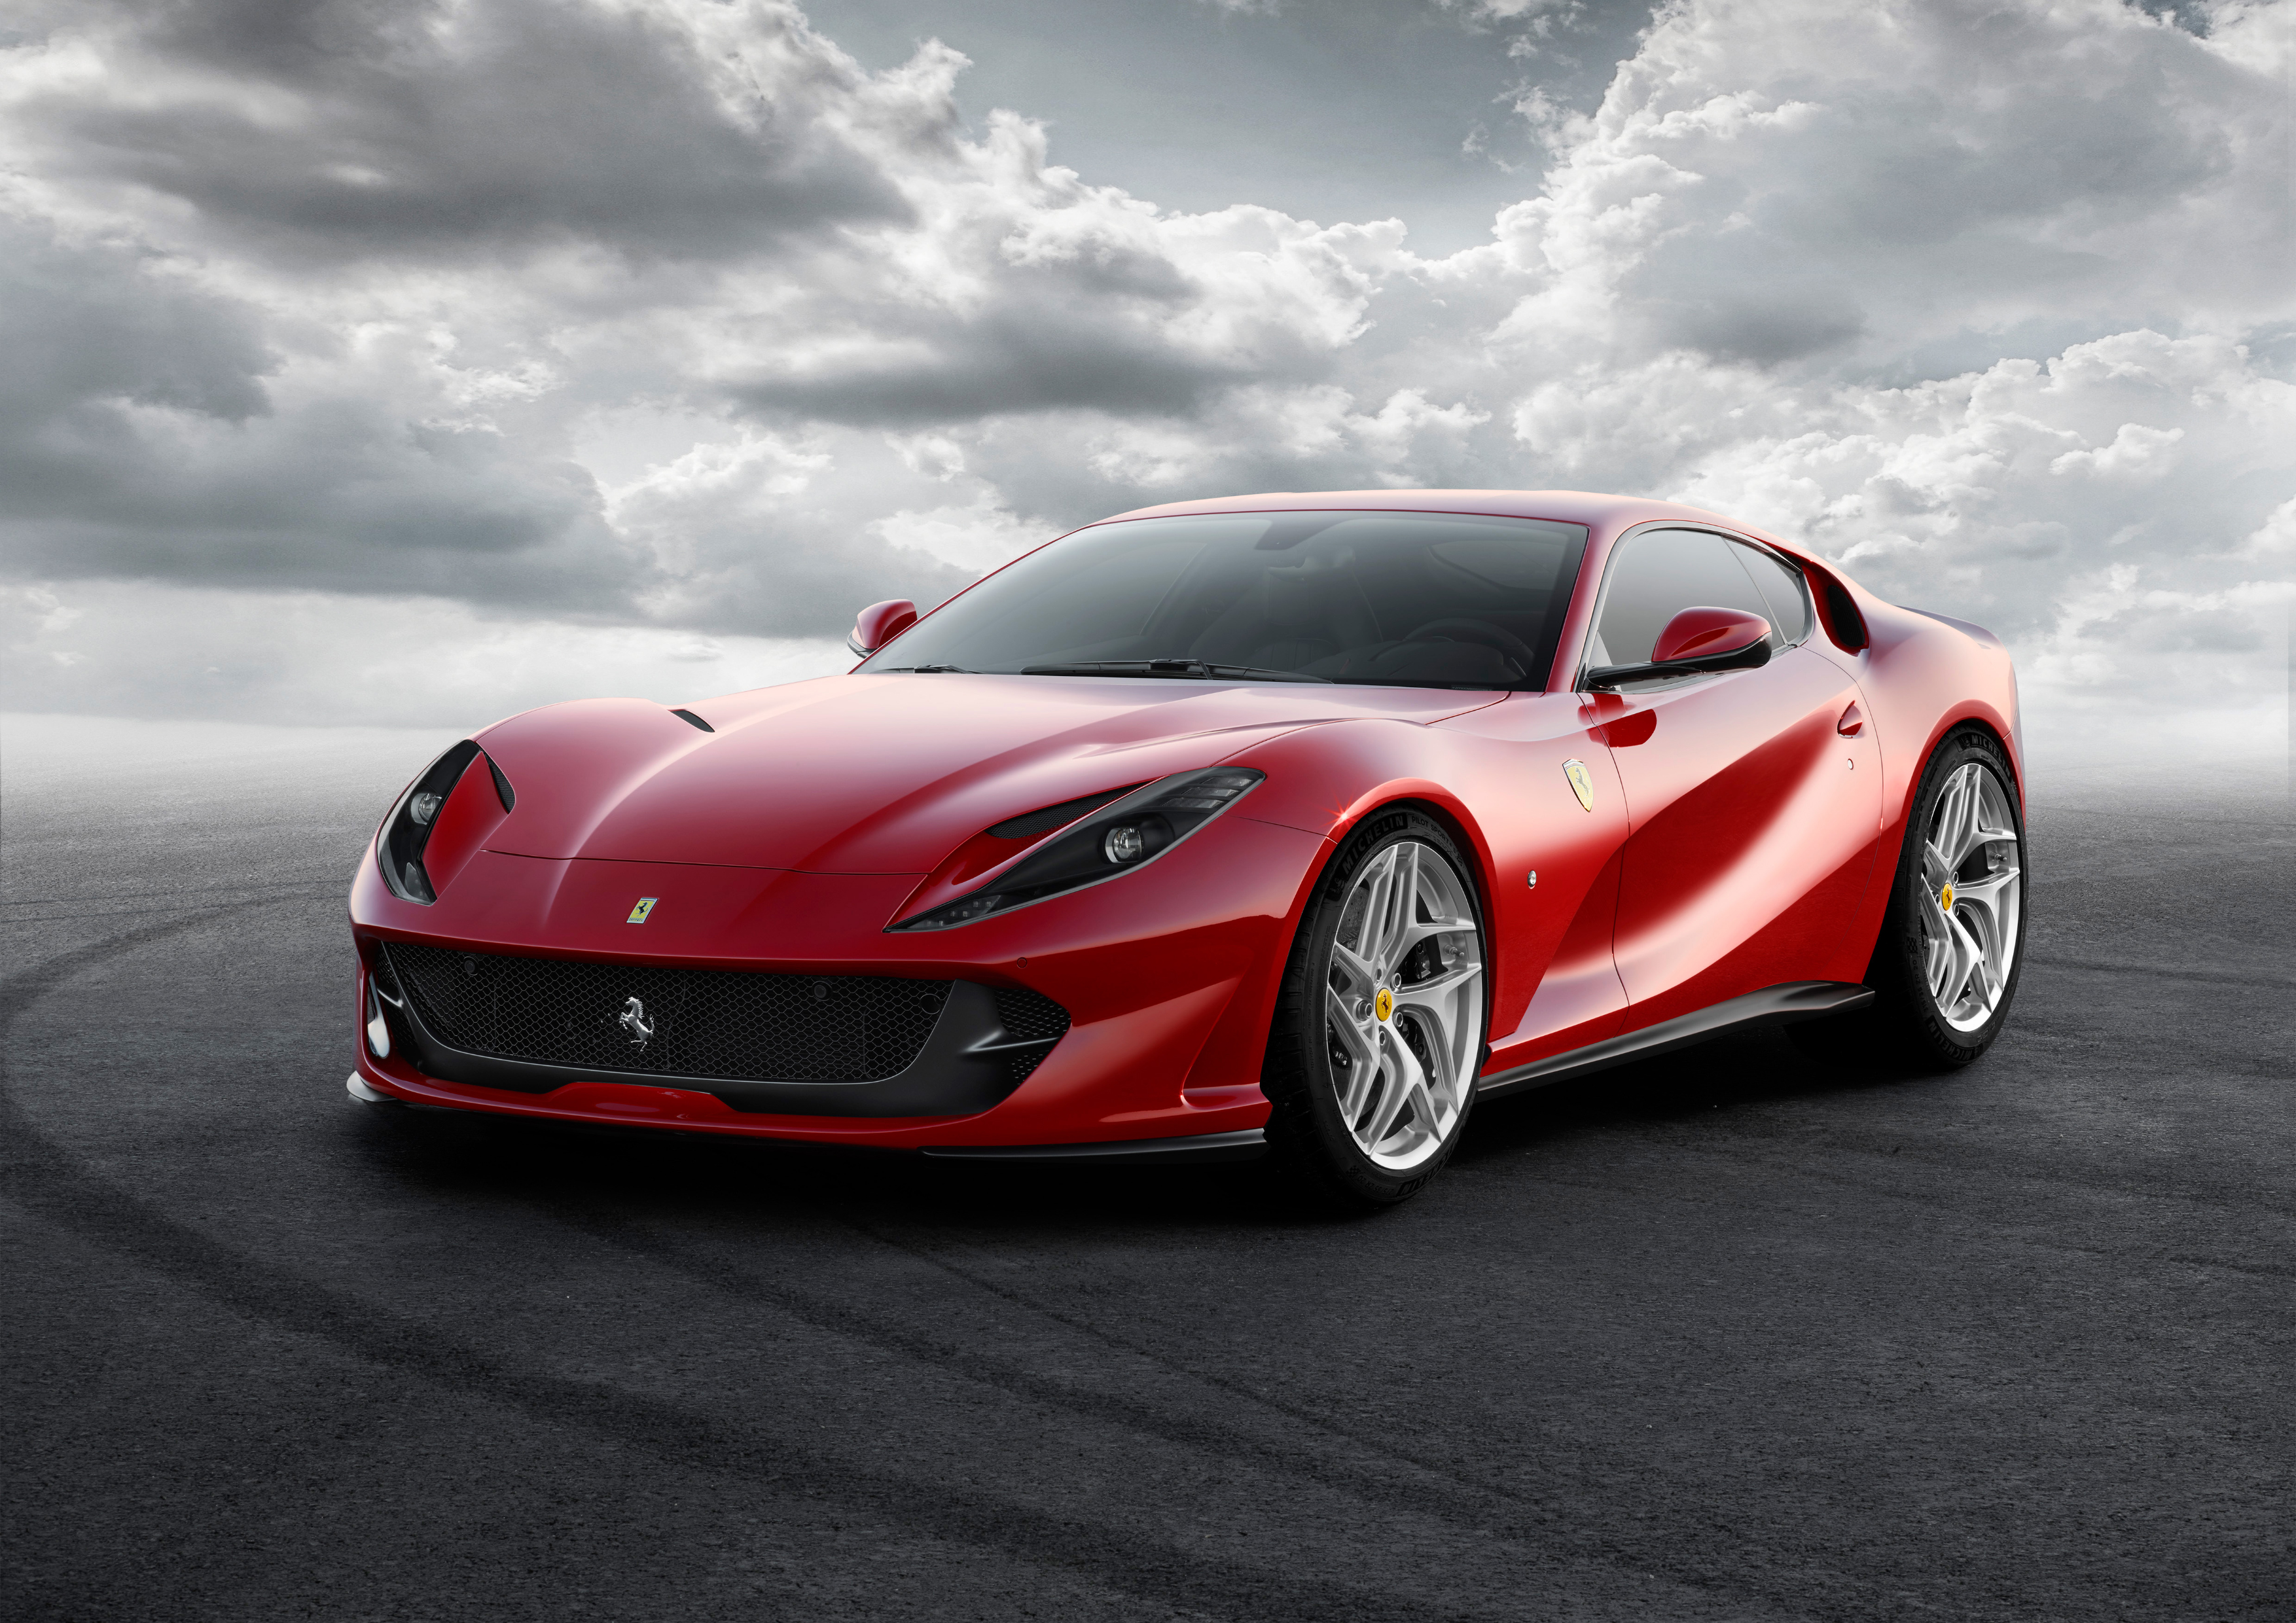 Ferrari 812 Superfast 4k Wallpaper